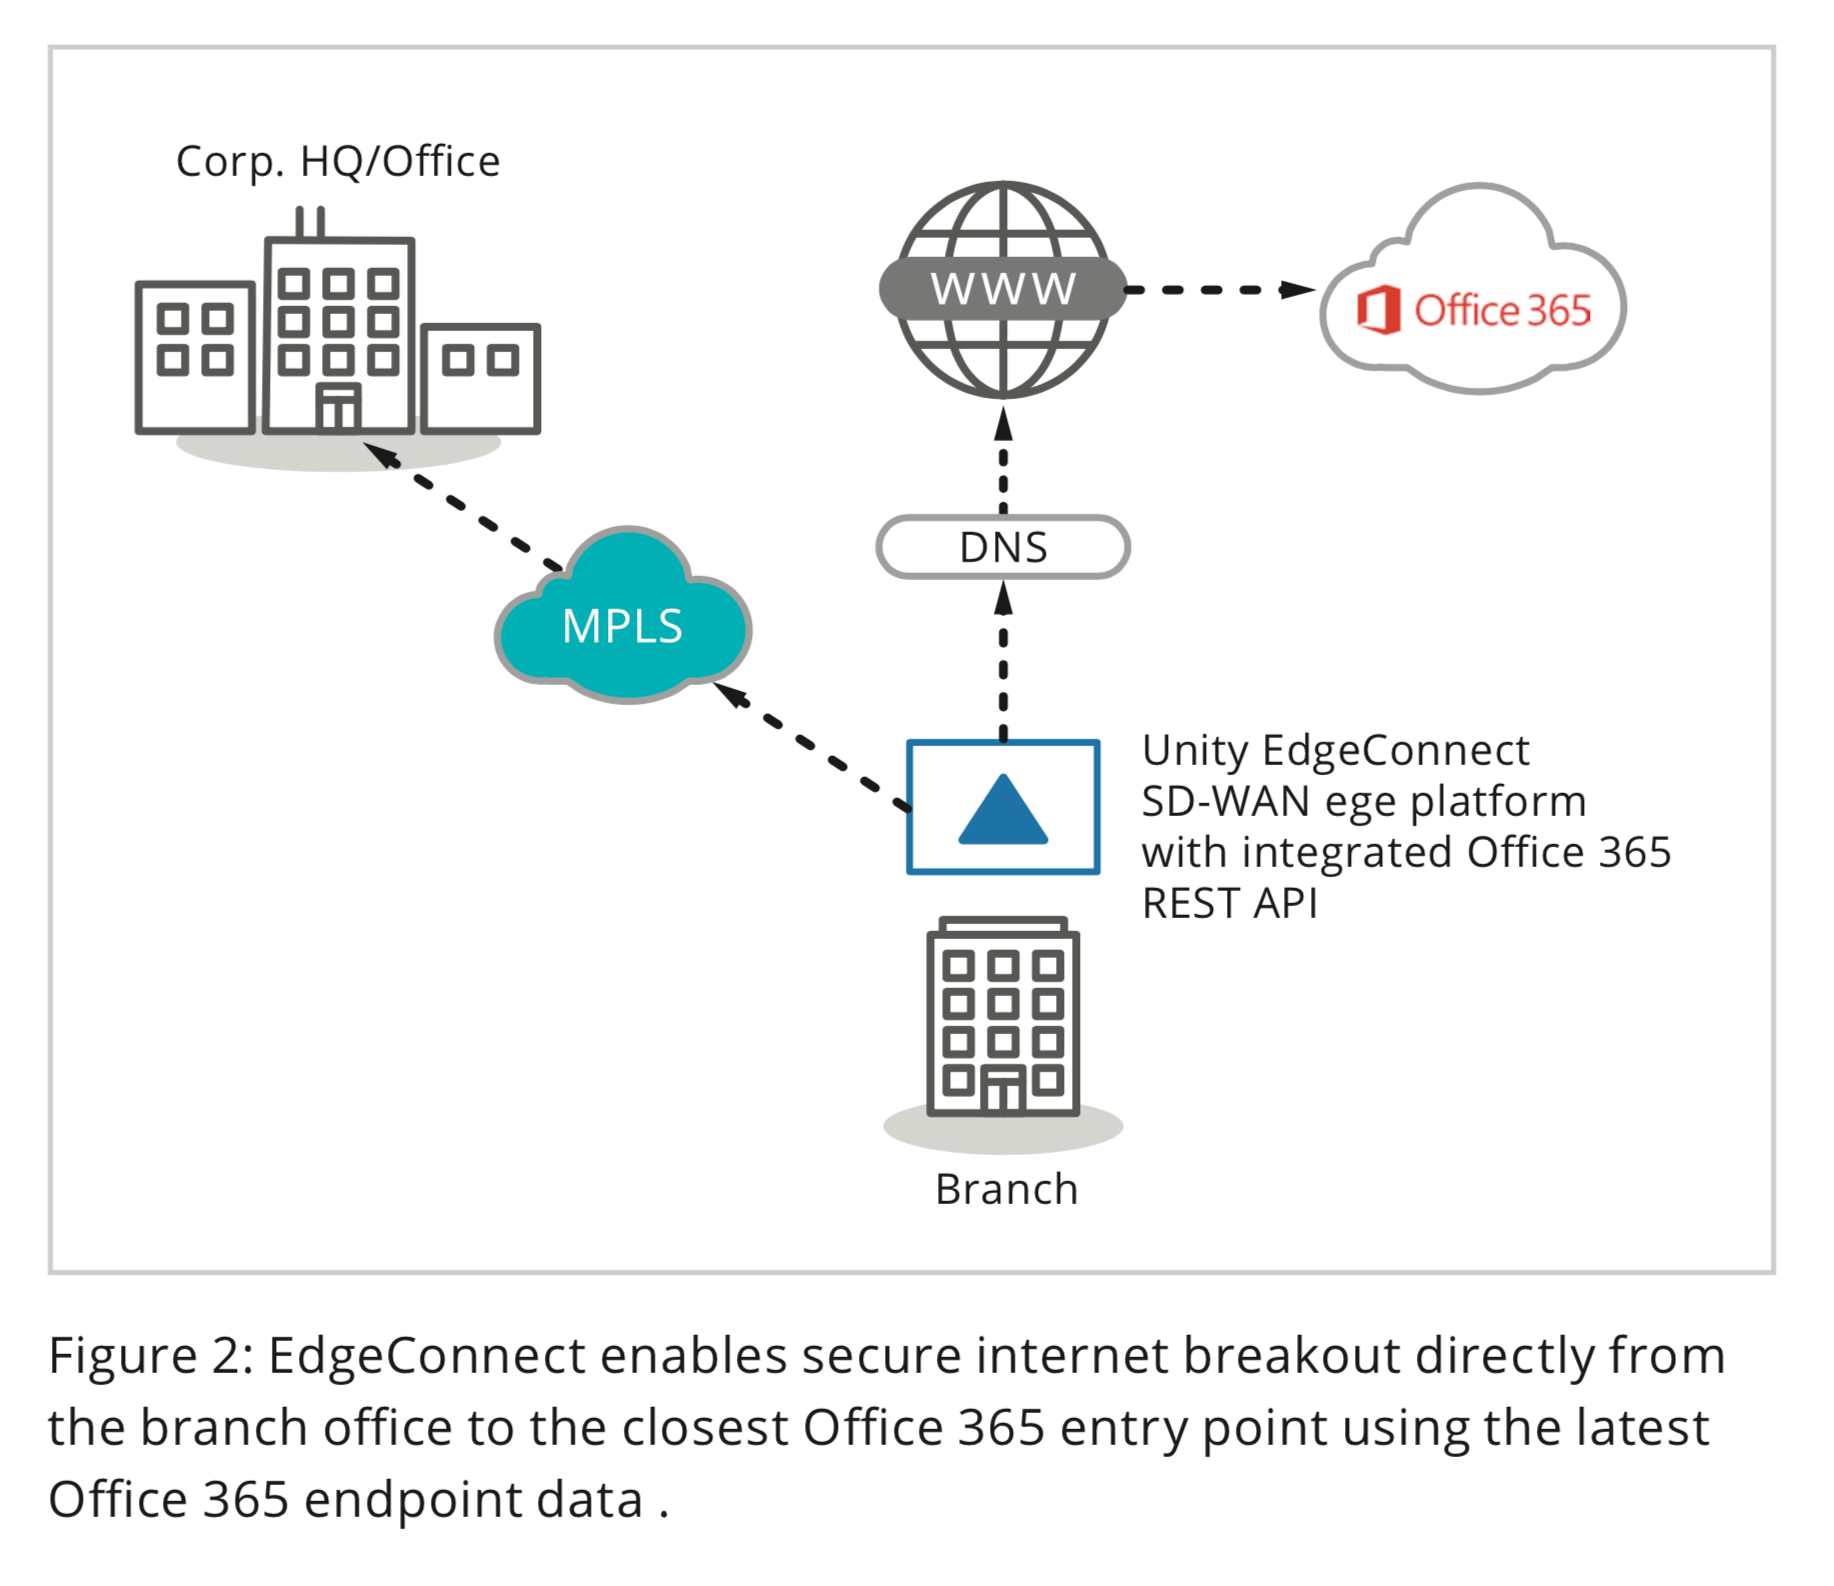 Figure 2: EdgeConnect enables secure internet breakout directly from the branch office to the closest Office 365 entry point using the latest Office 365 endpoint data.